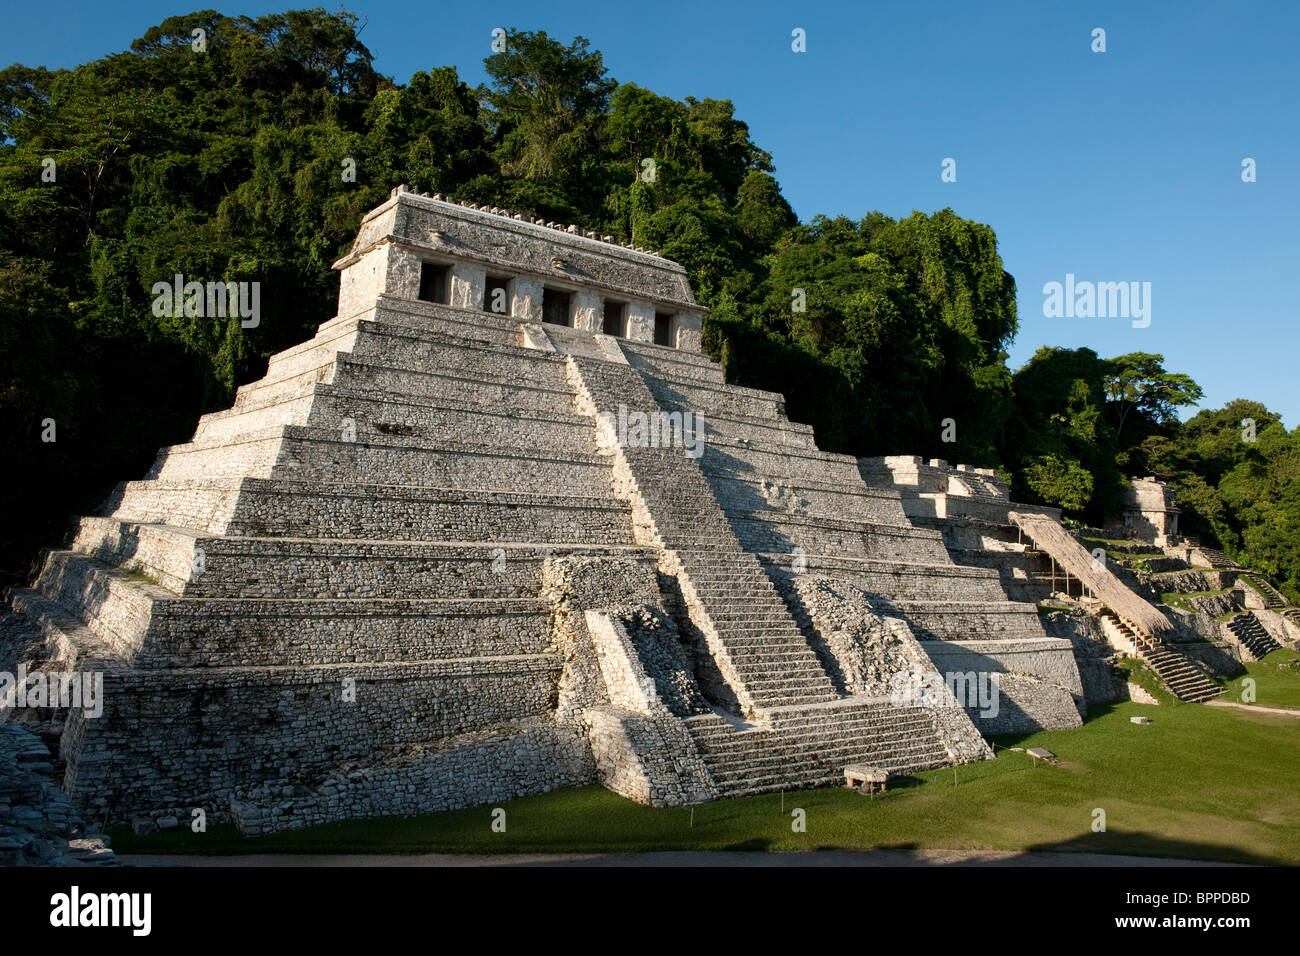 Maya ruins of Palenque, The temple of the inscriptions, Palenque, Mexico - Stock Image